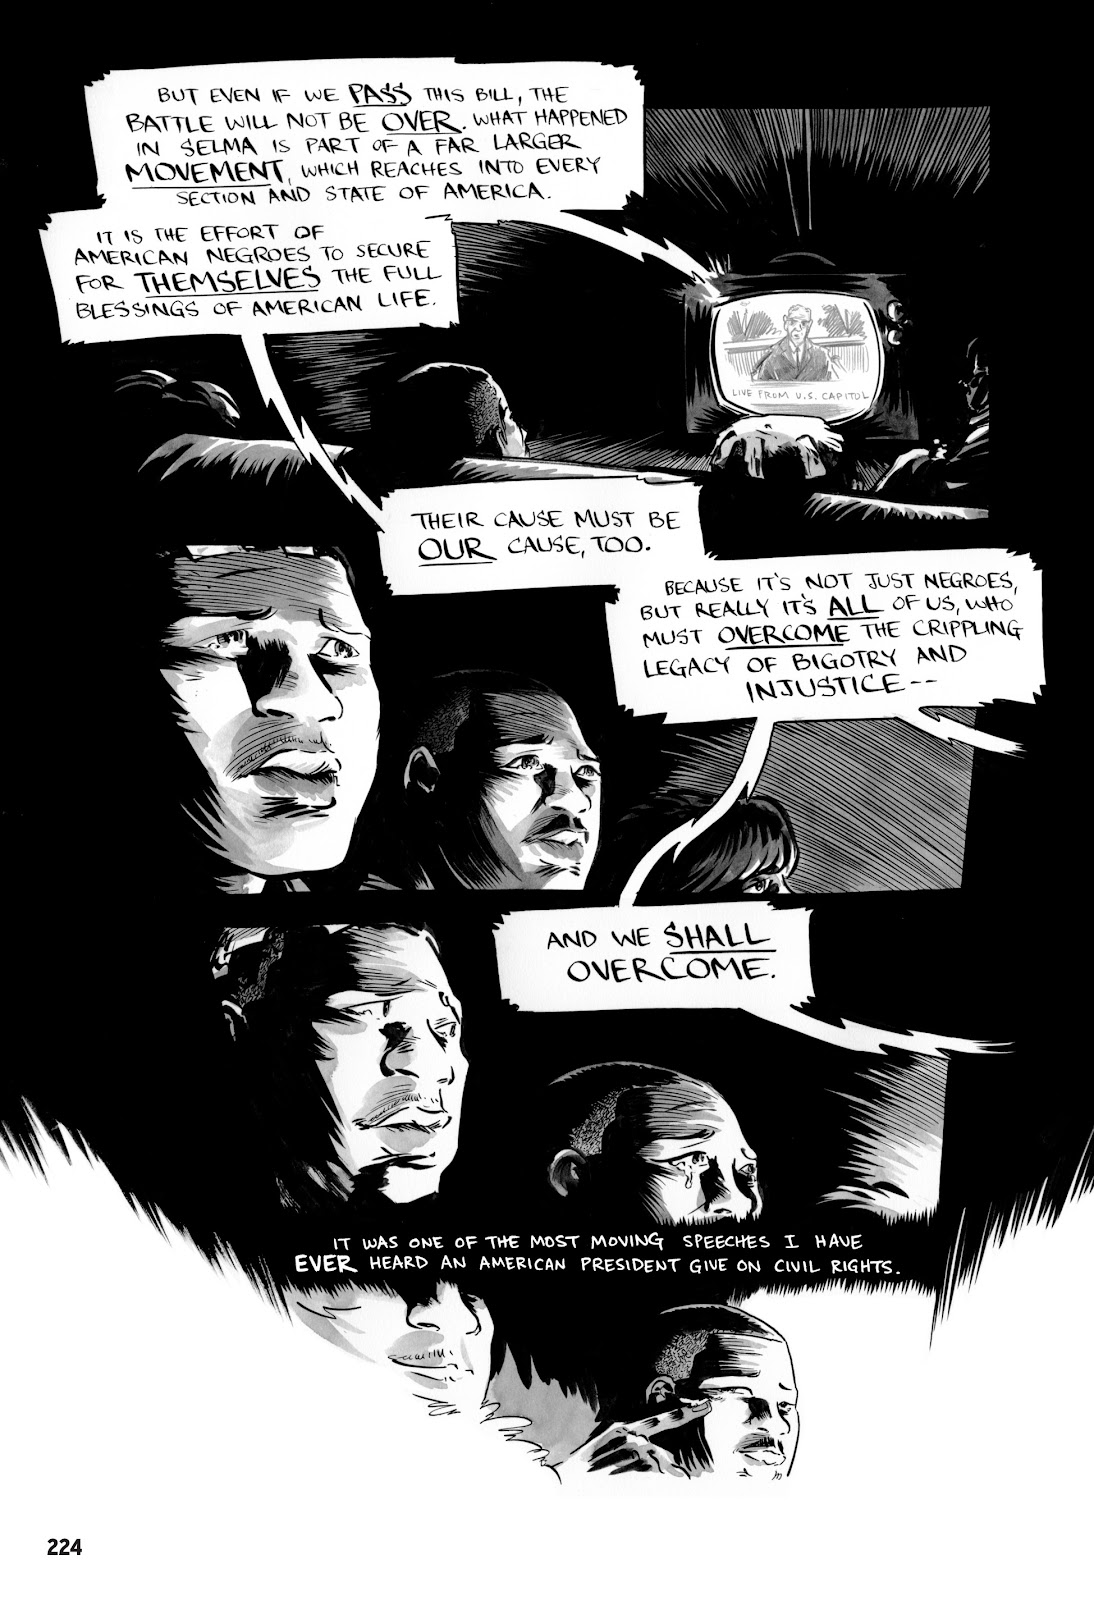 March 3 Page 218